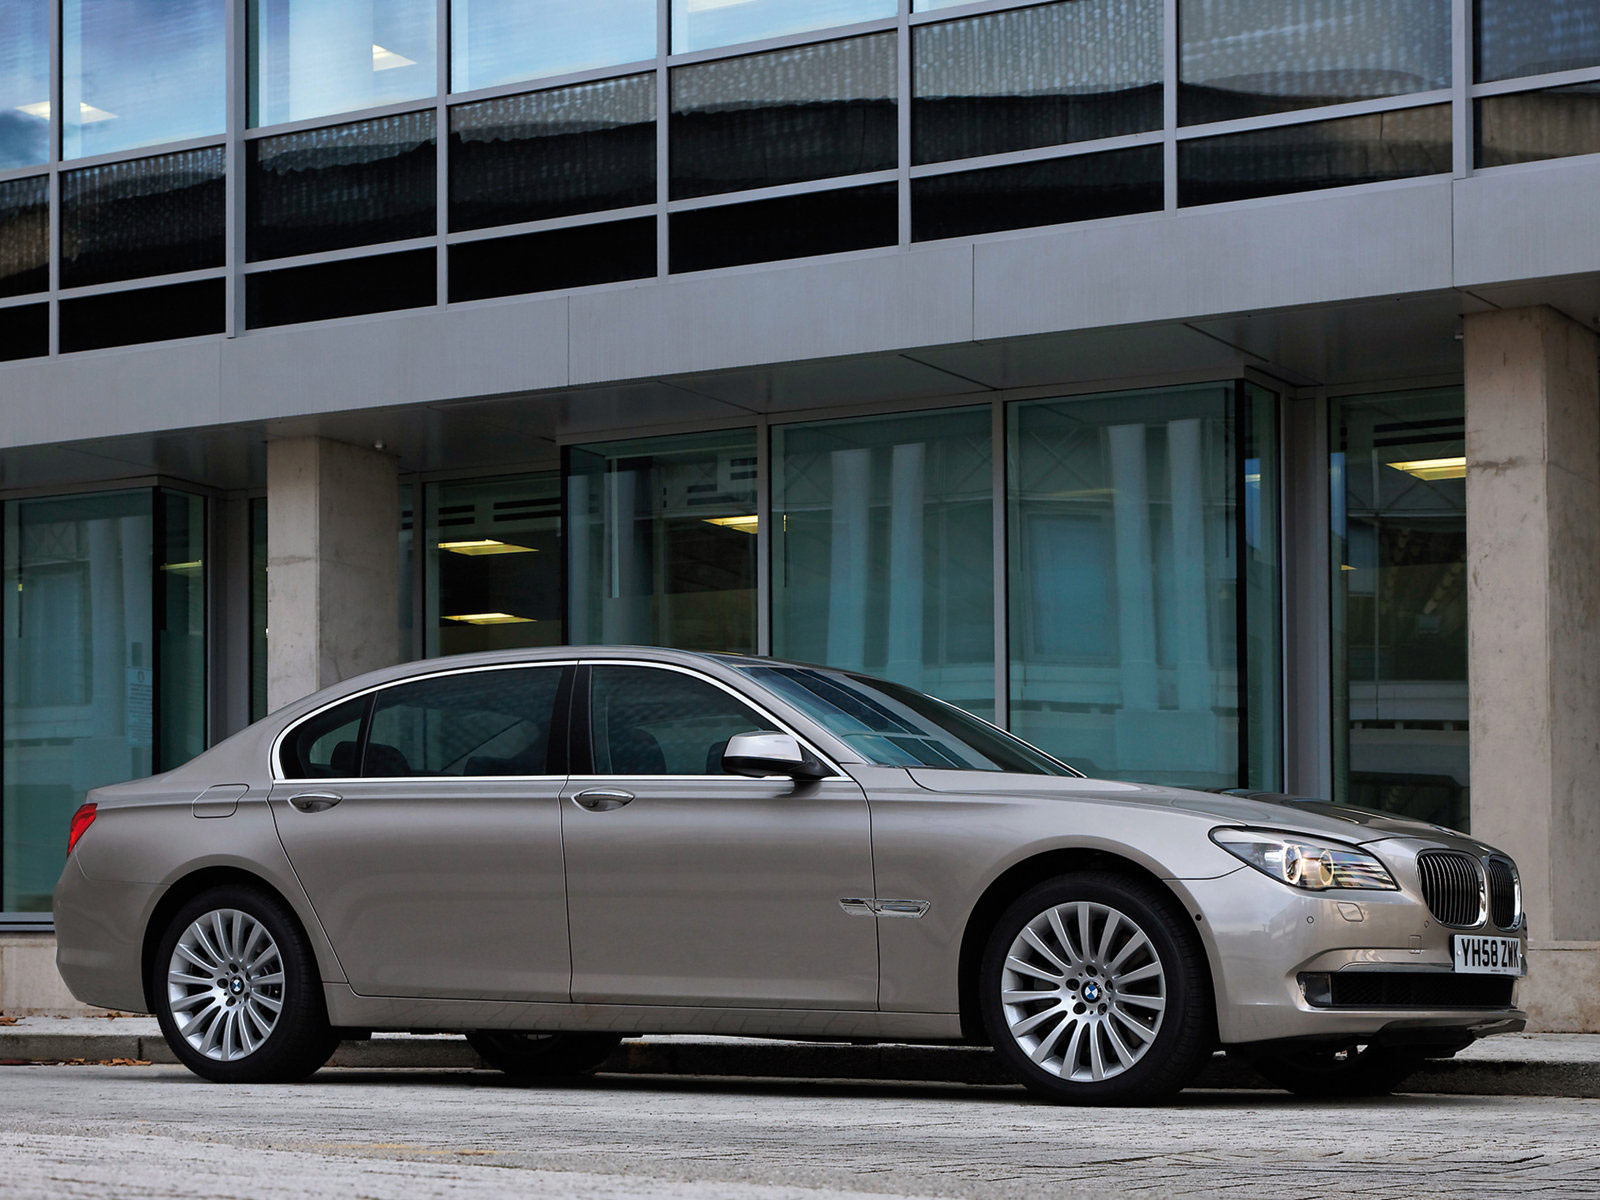 2009 BMW 7-Series UK Version | Gambar Mobil BMW |